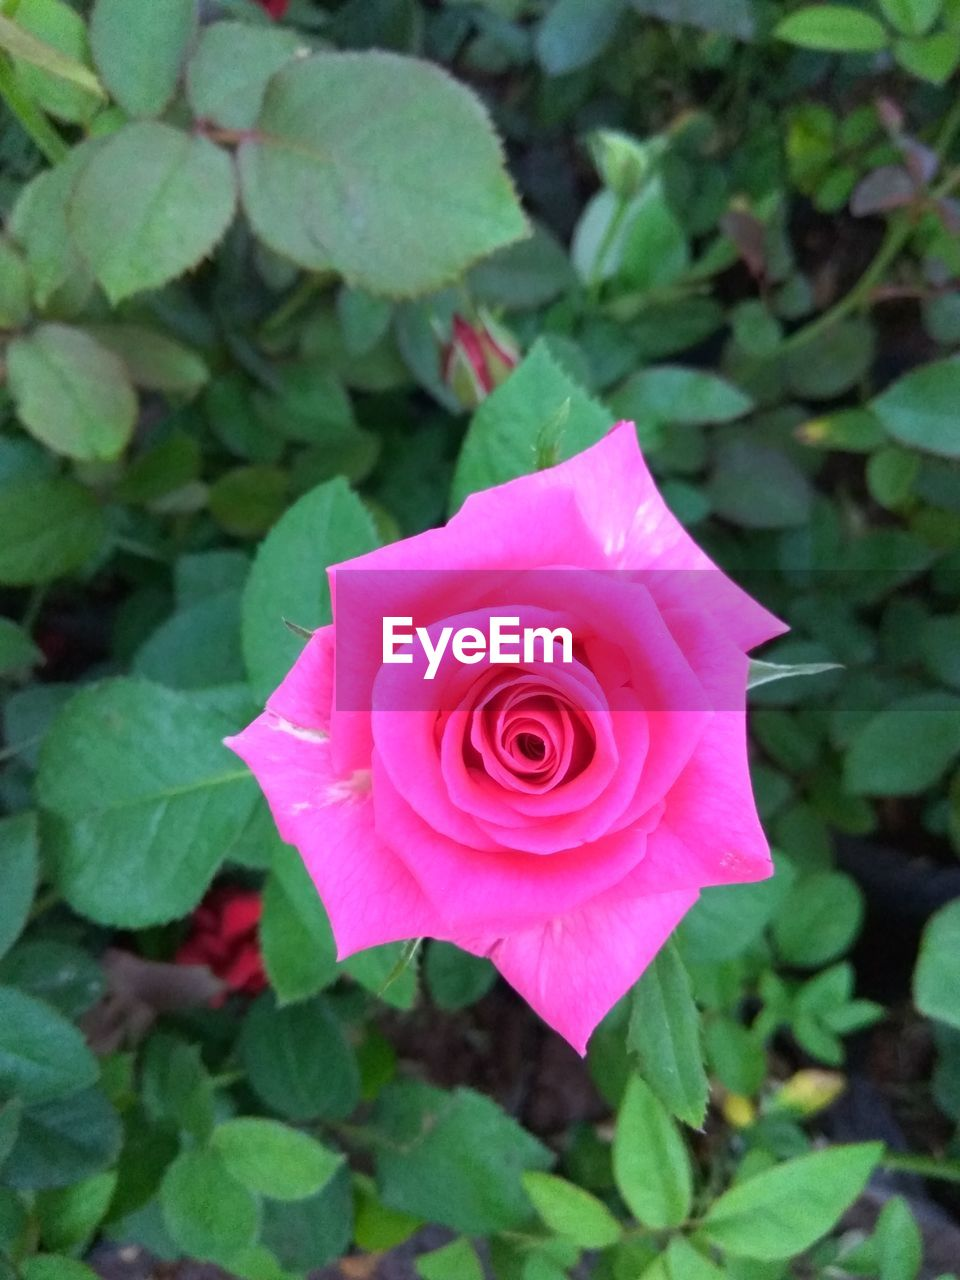 flower, rose - flower, petal, nature, flower head, fragility, beauty in nature, pink color, plant, leaf, freshness, growth, close-up, blooming, no people, rose petals, outdoors, day